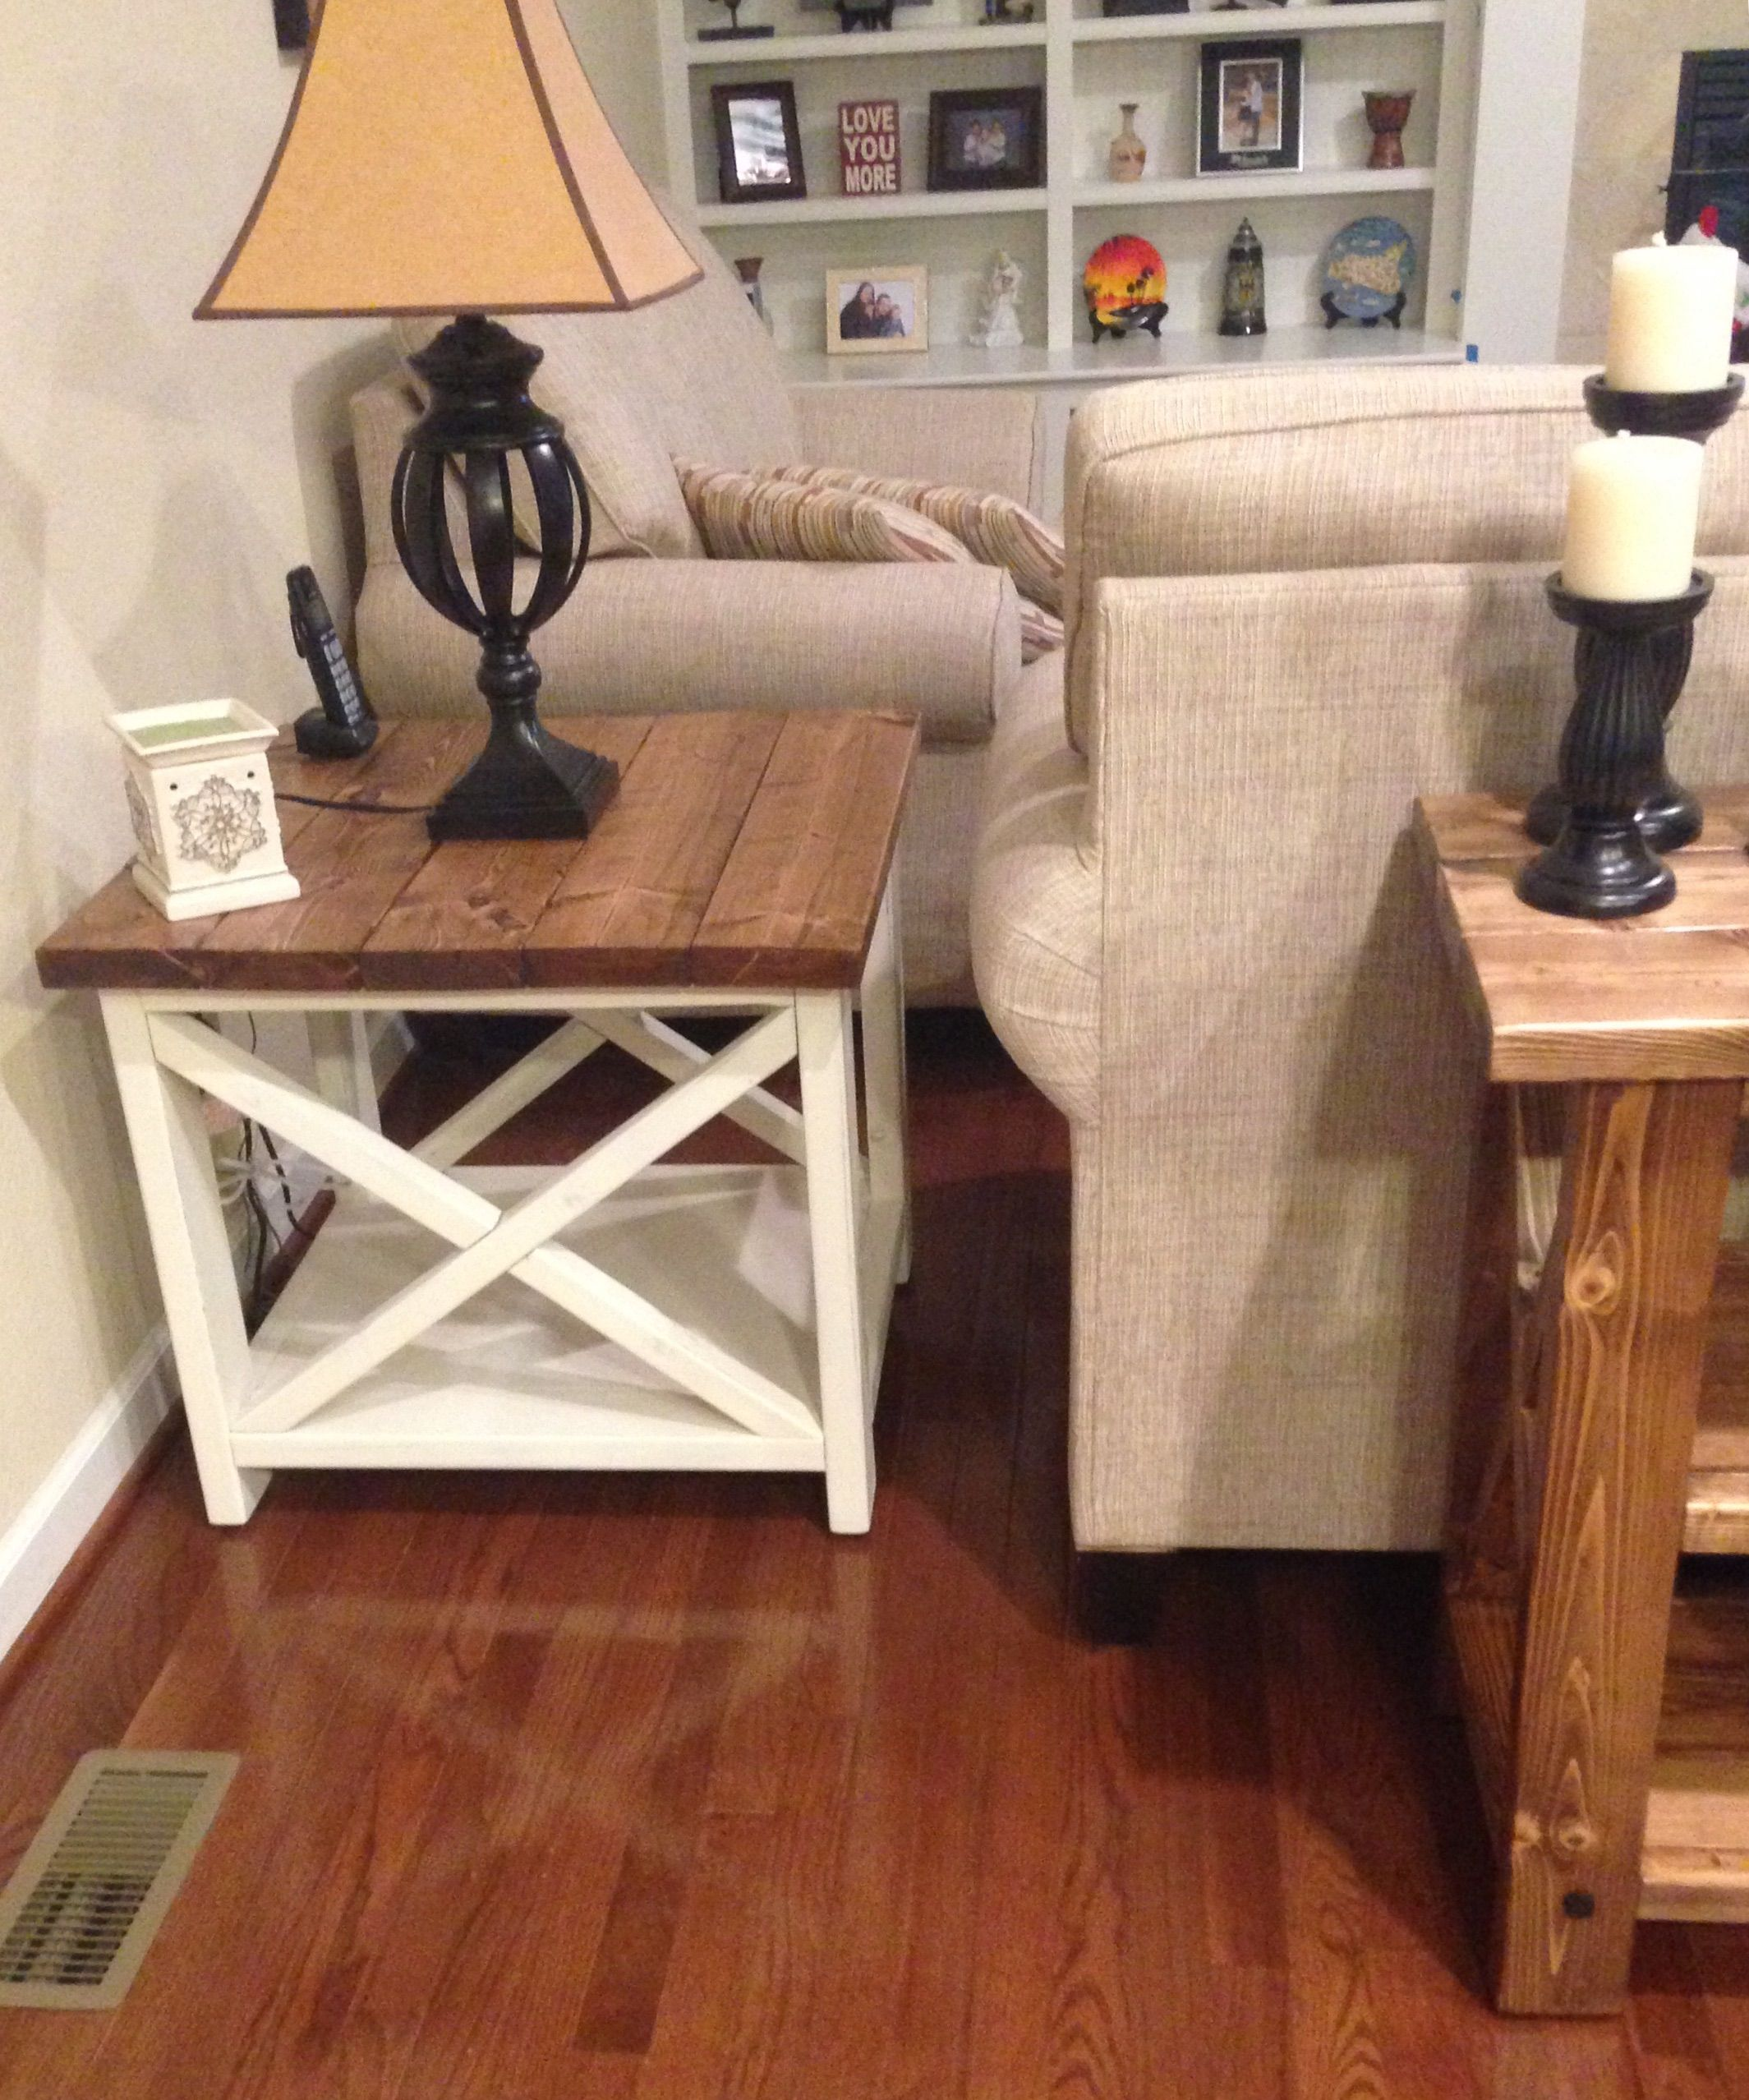 furniture ana white farmhouse bedside table diy projects plus rustic end yourself home from and with engaging long accent attractive ture glass units log quirky tables distressed